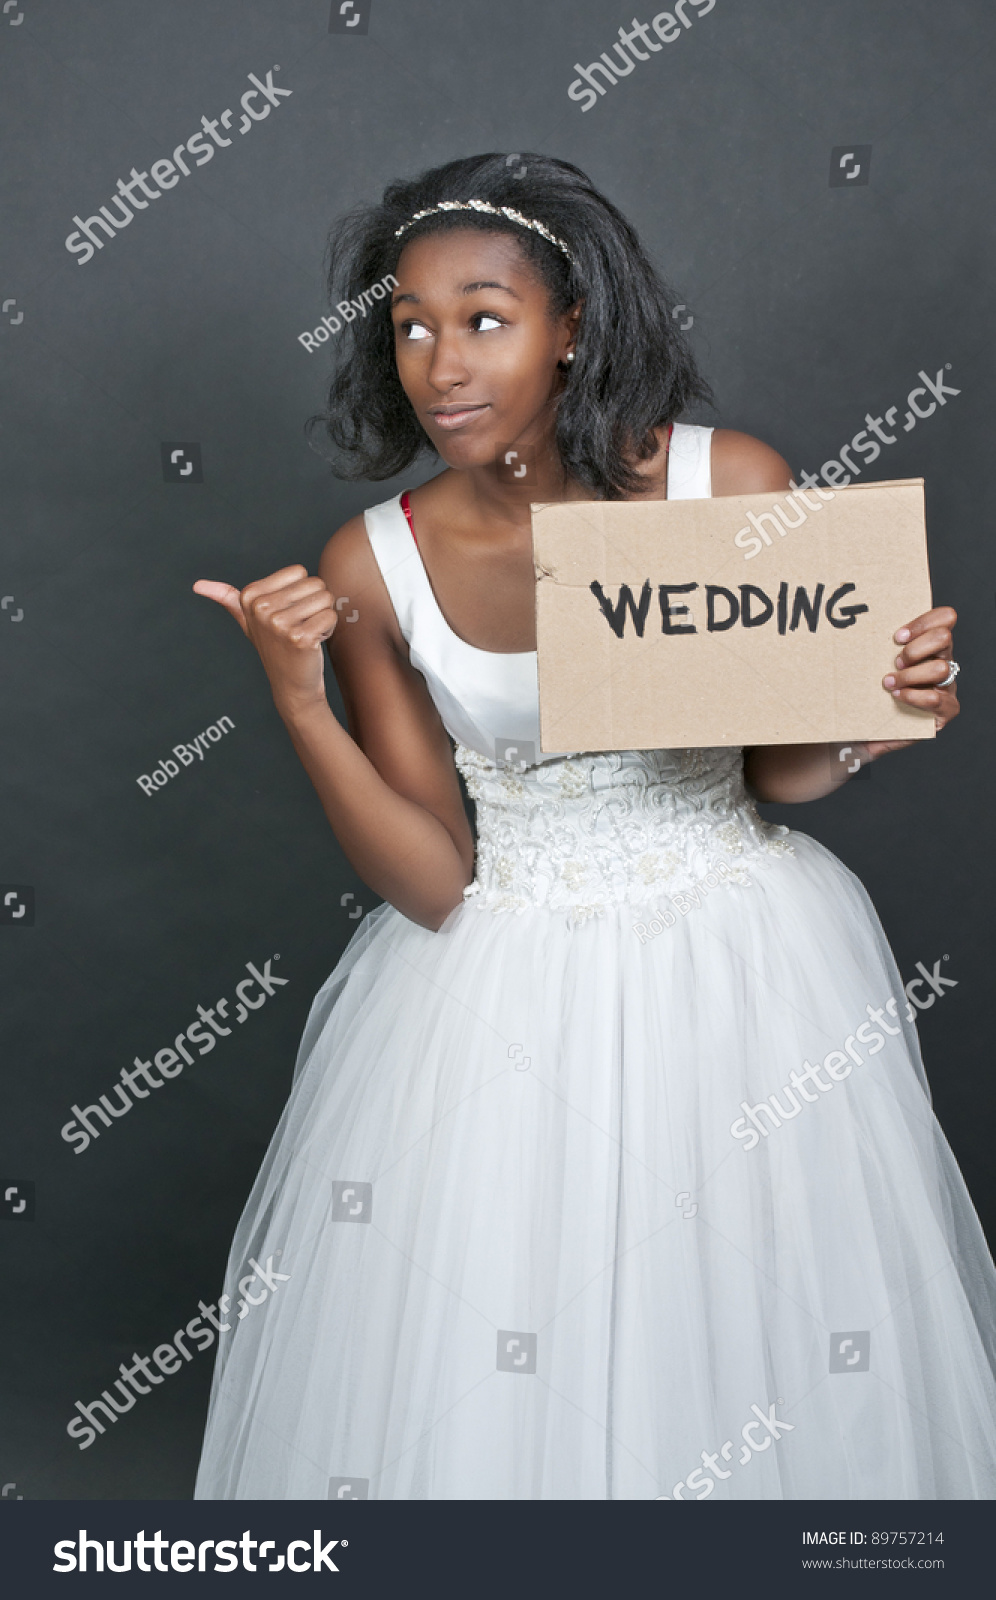 royalty free stock photography black woman wedding dress image african american wedding dresses Black woman in wedding dress